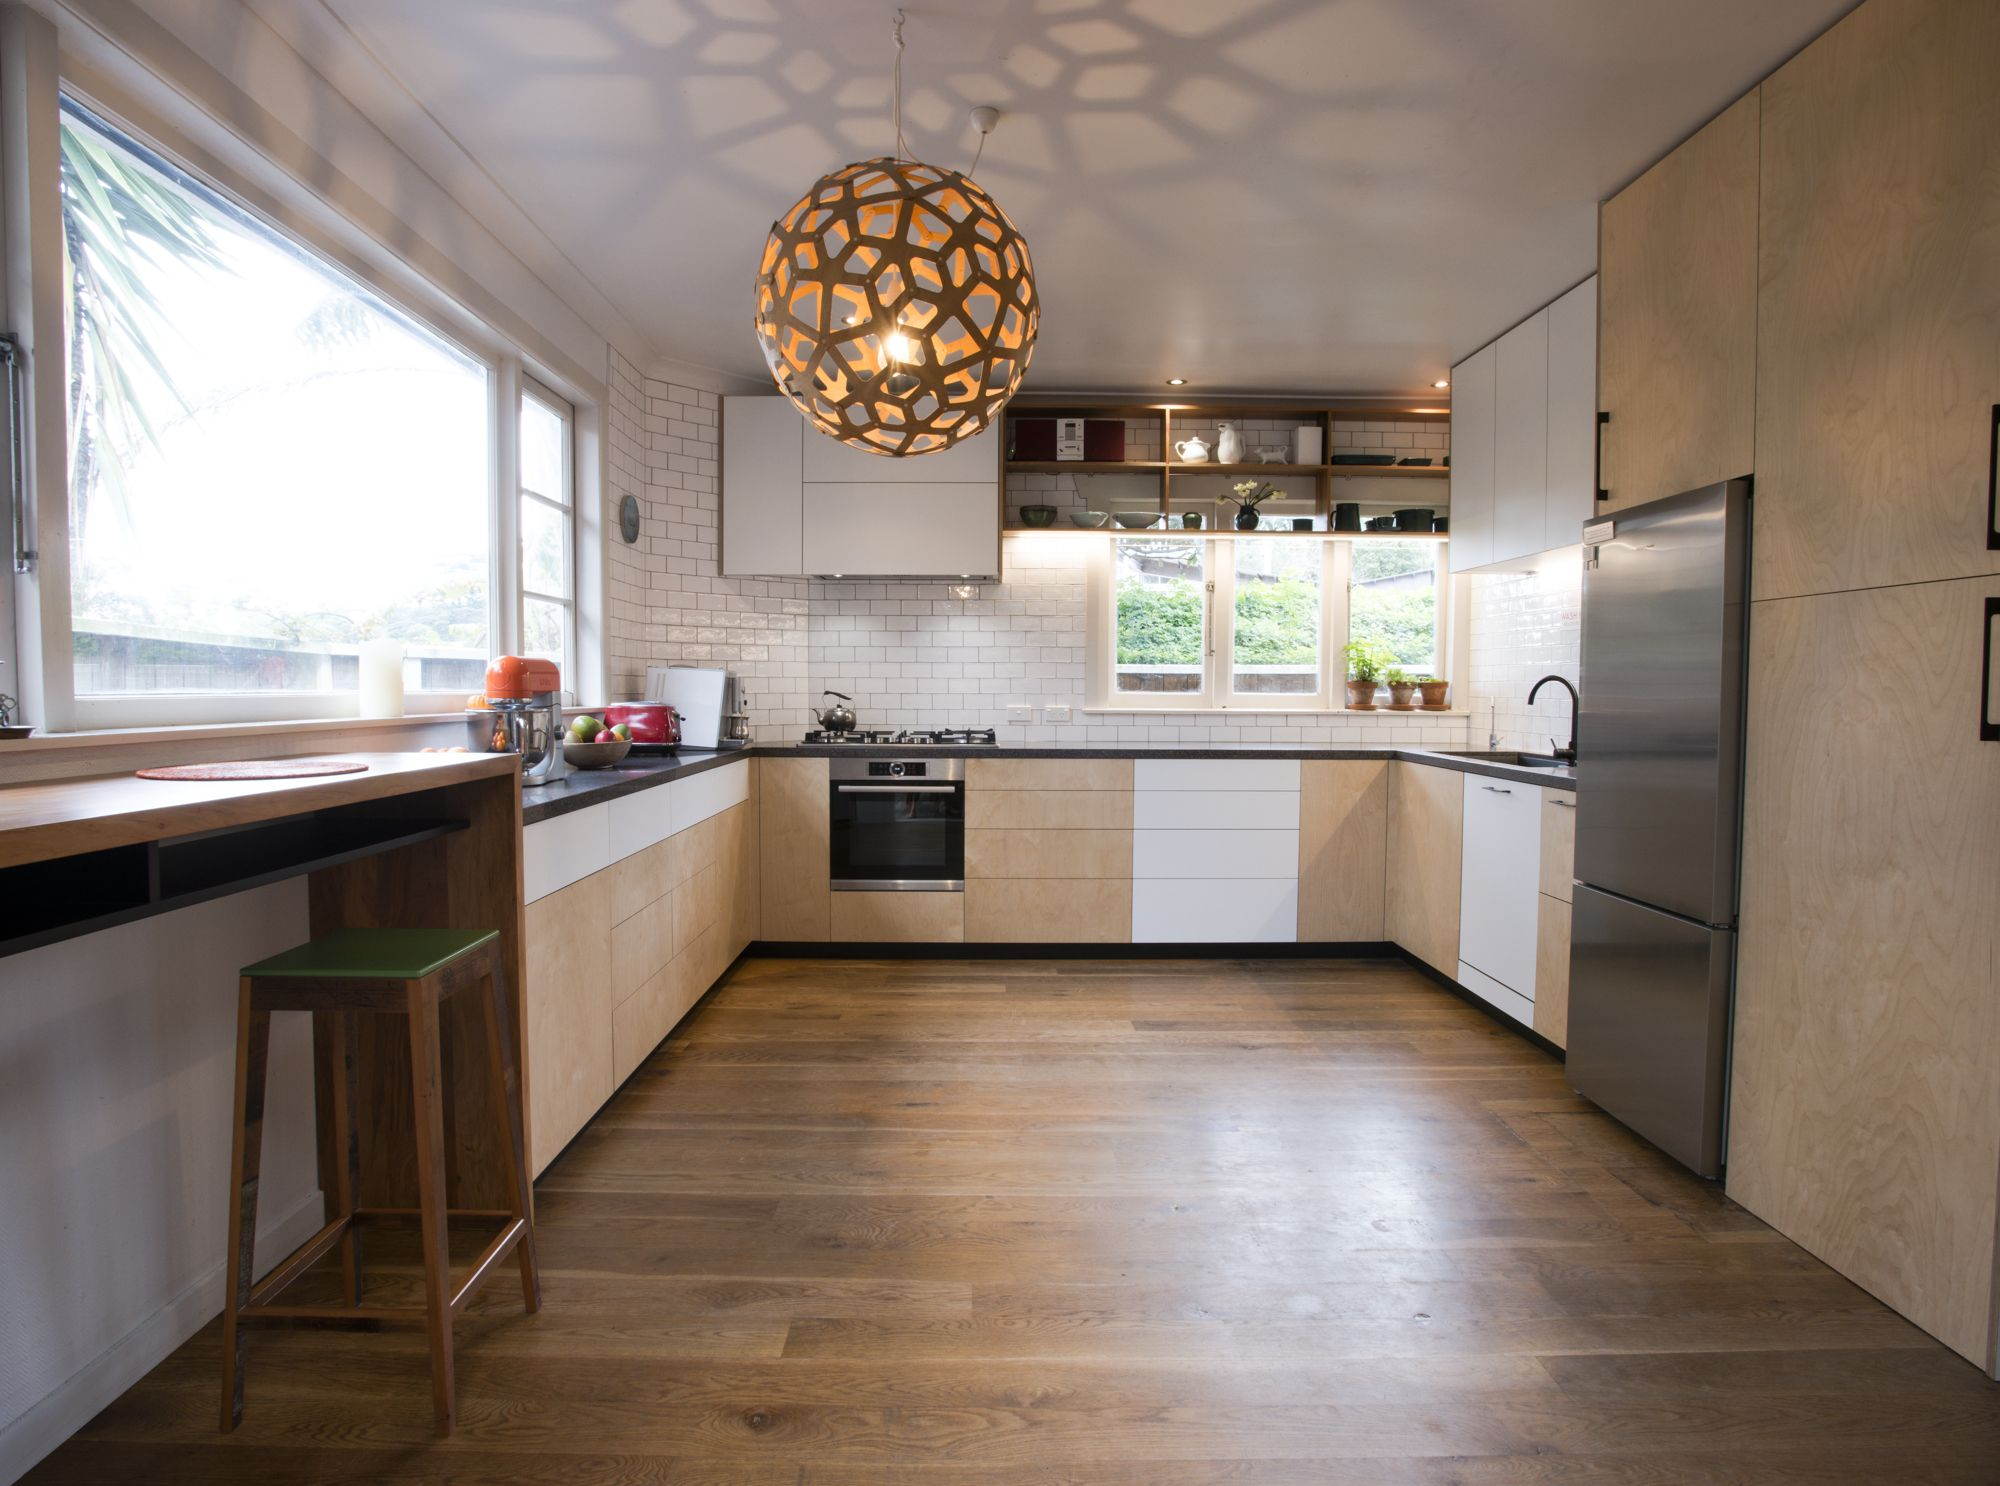 Birch Ply Kitchen with recycled timber detailing by